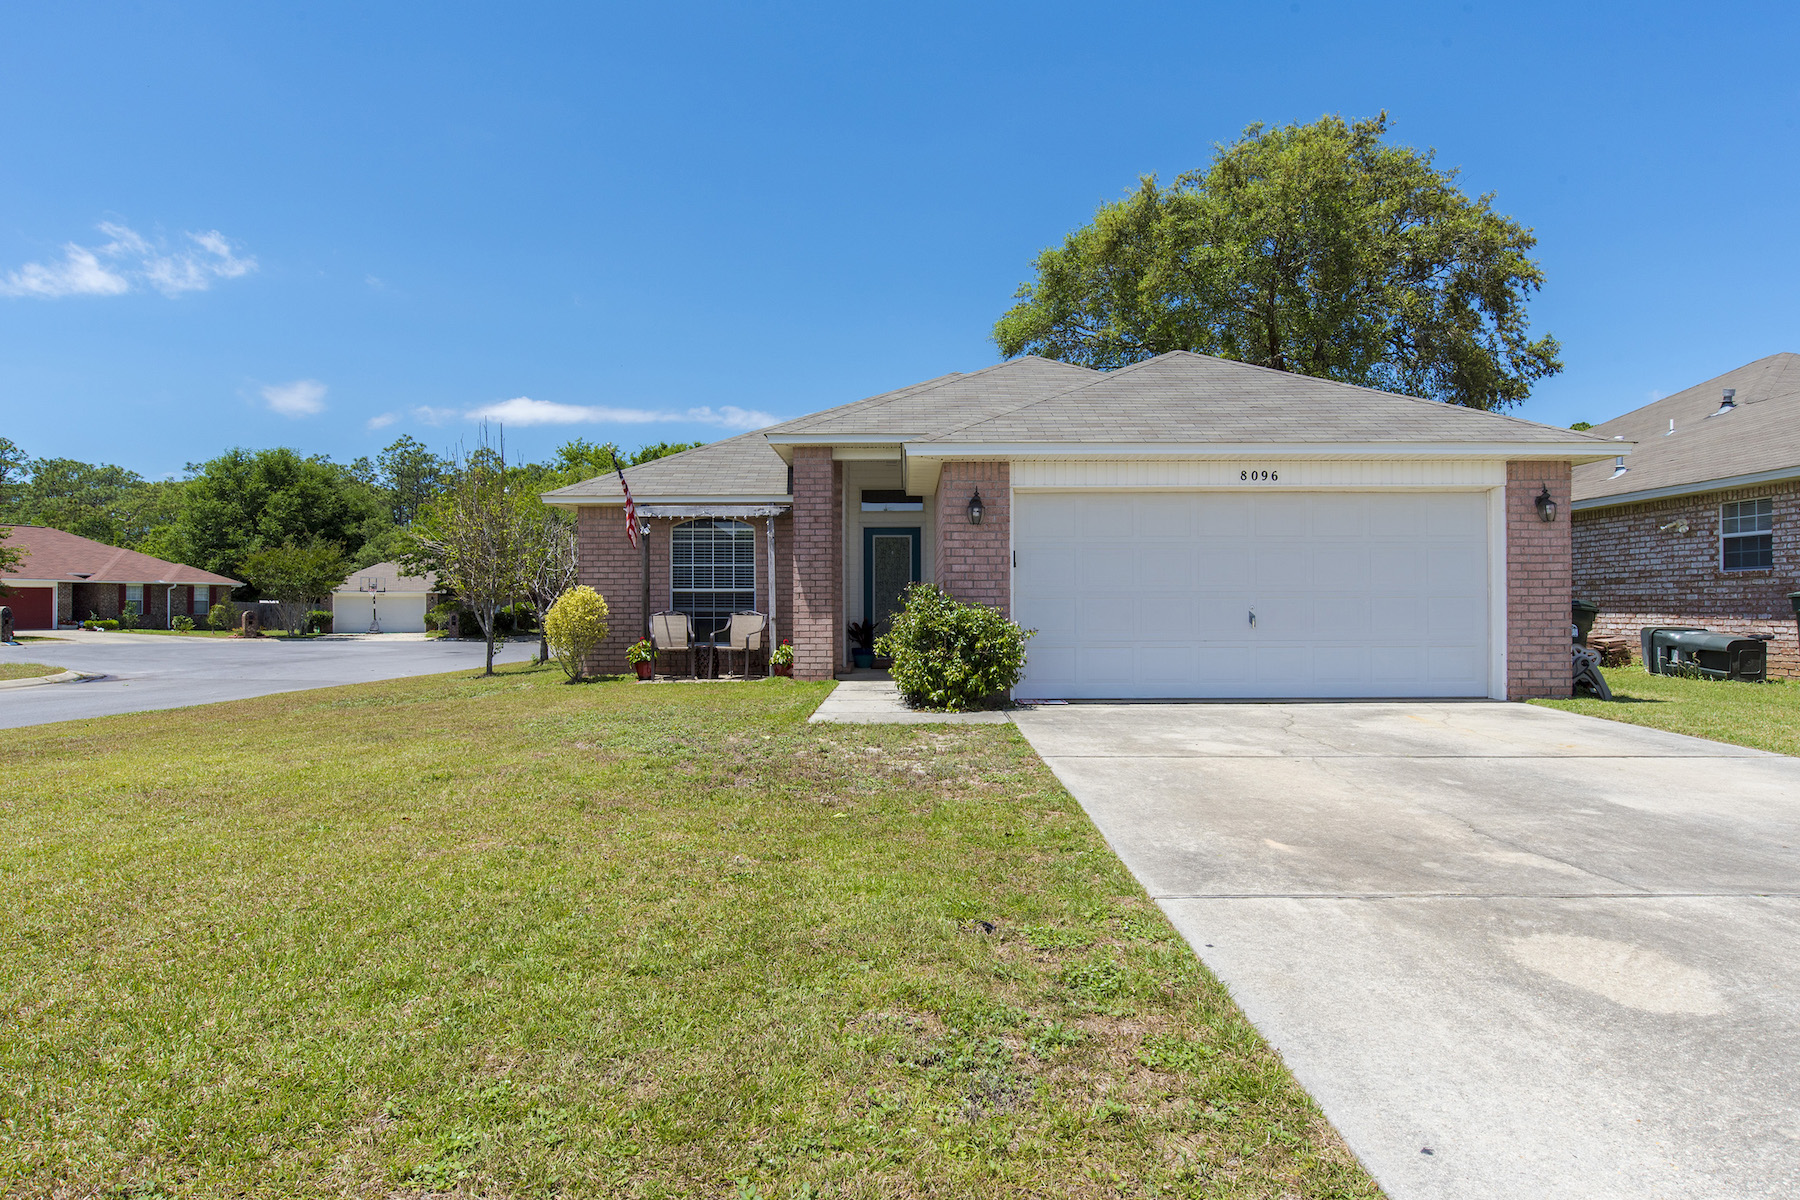 Single Family Home for Sale at Crown Pointe 8096 Castle Pointe Way Pensacola, Florida, 32506 United States